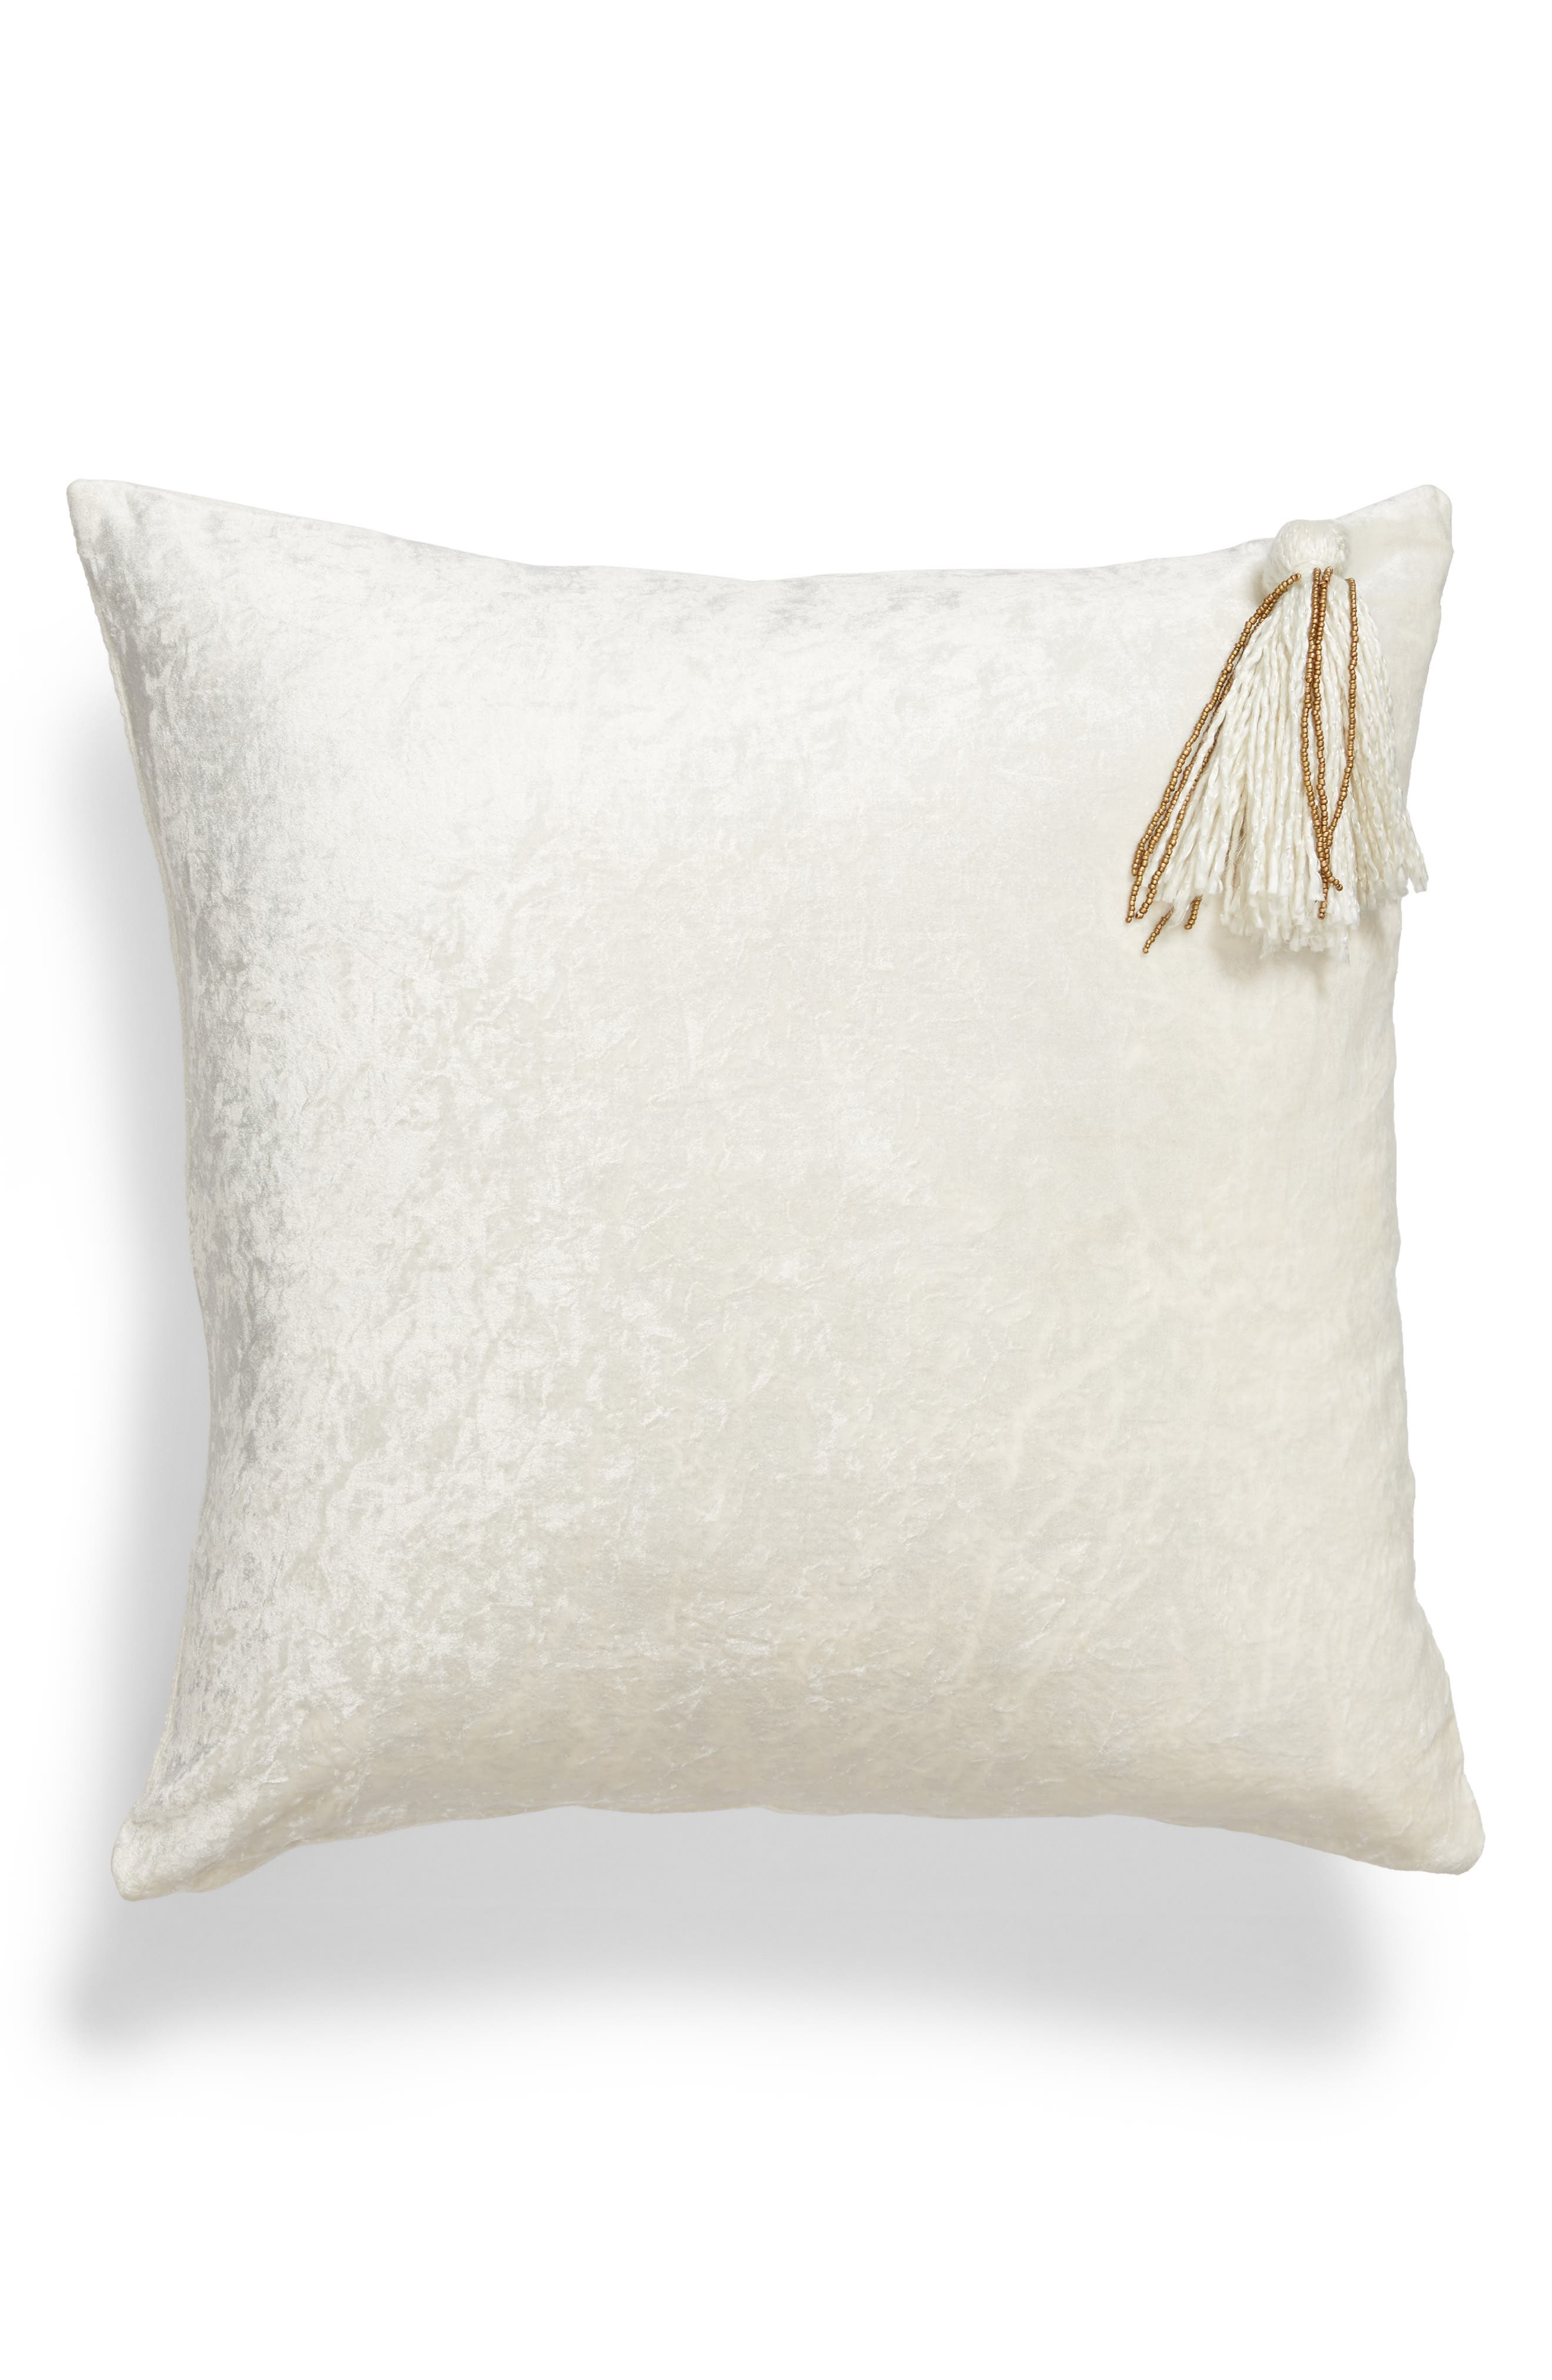 Nordstrom at Home Tassel Accent Pillow